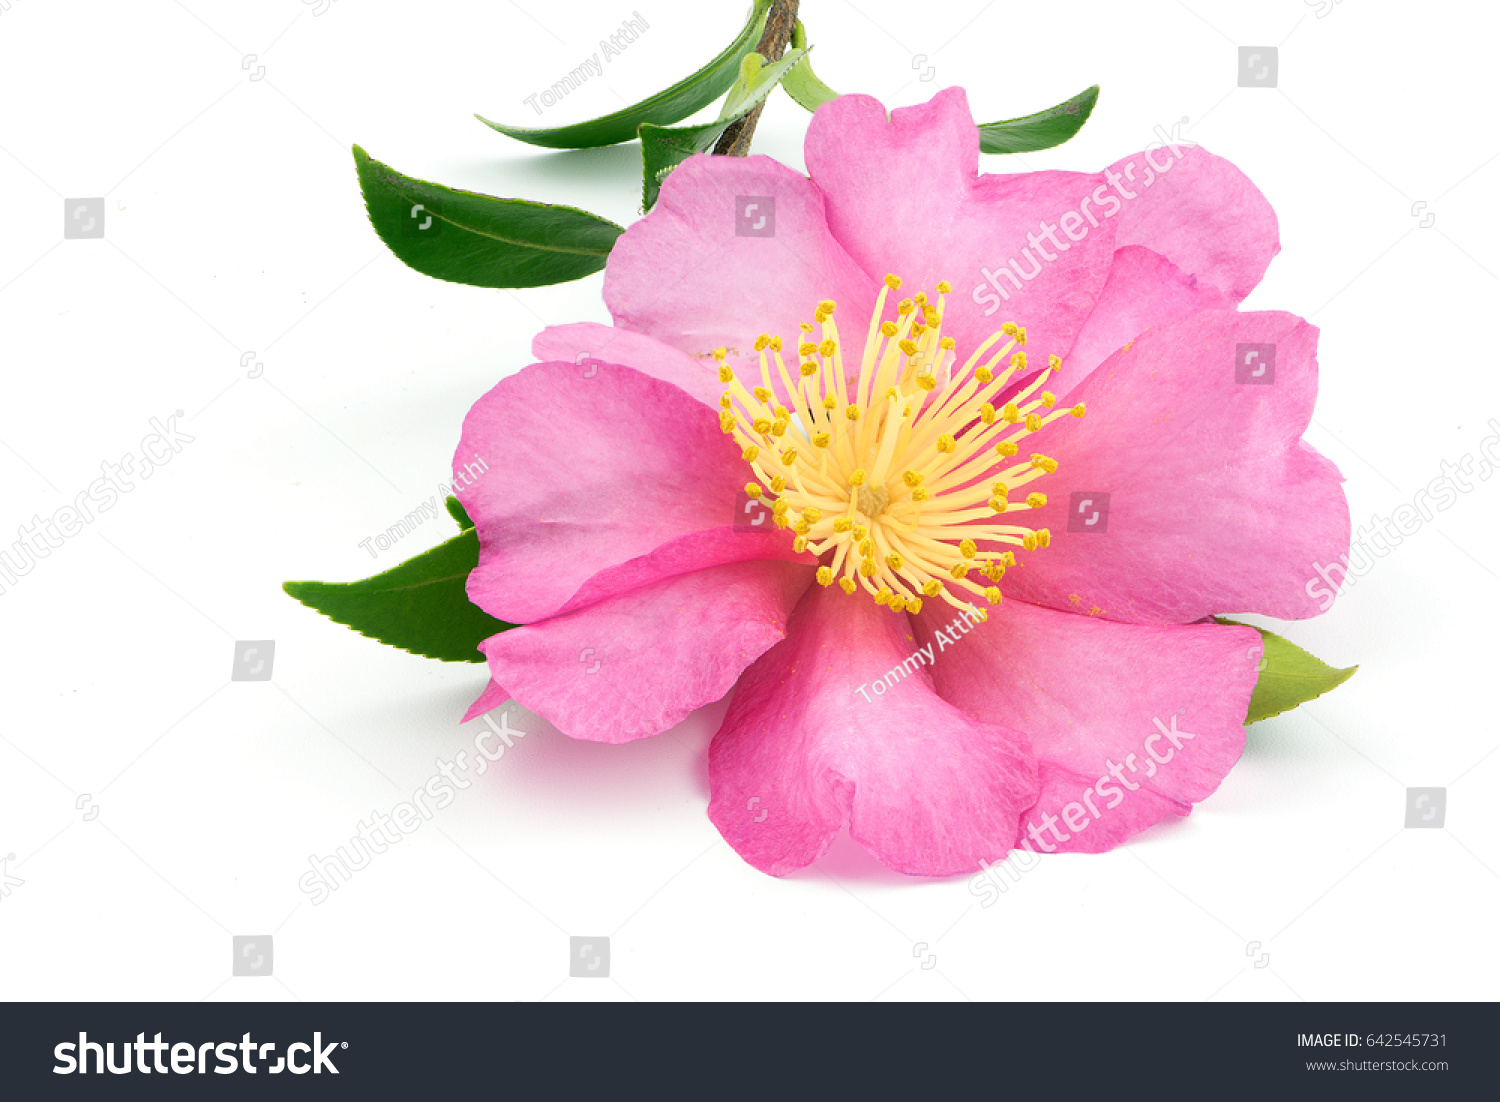 Pink Camellia Flower With Leaf Isolated On White Background Ez Canvas